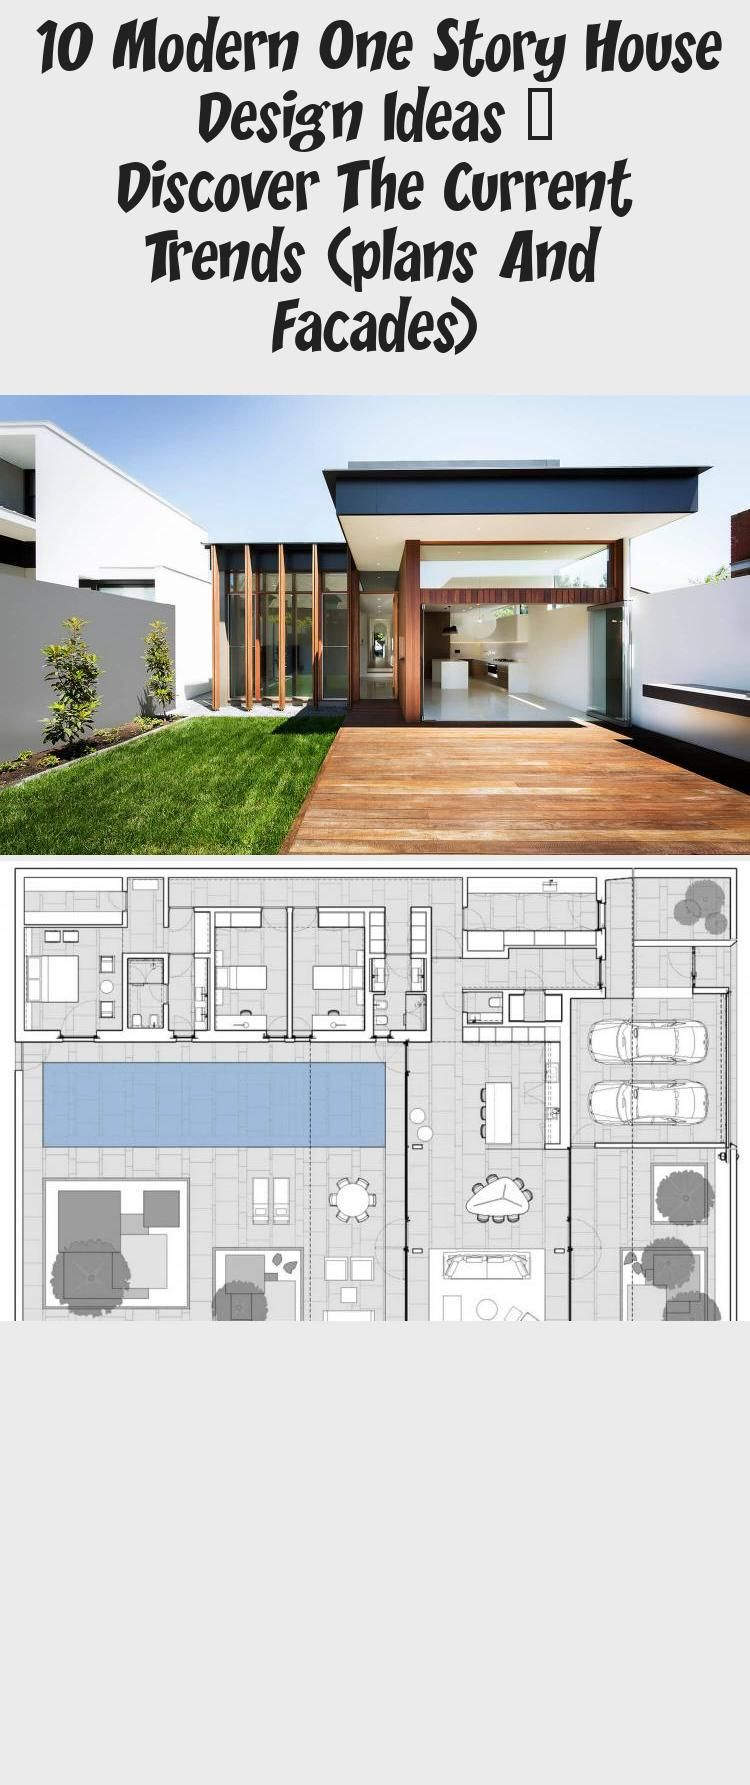 10 Modern One Story House Design Ideas - Discover the Current Trends (Plans  and Facades) - #ModernHouseSketchBuil… in 2020 | Modern house facades, House  design, Story house